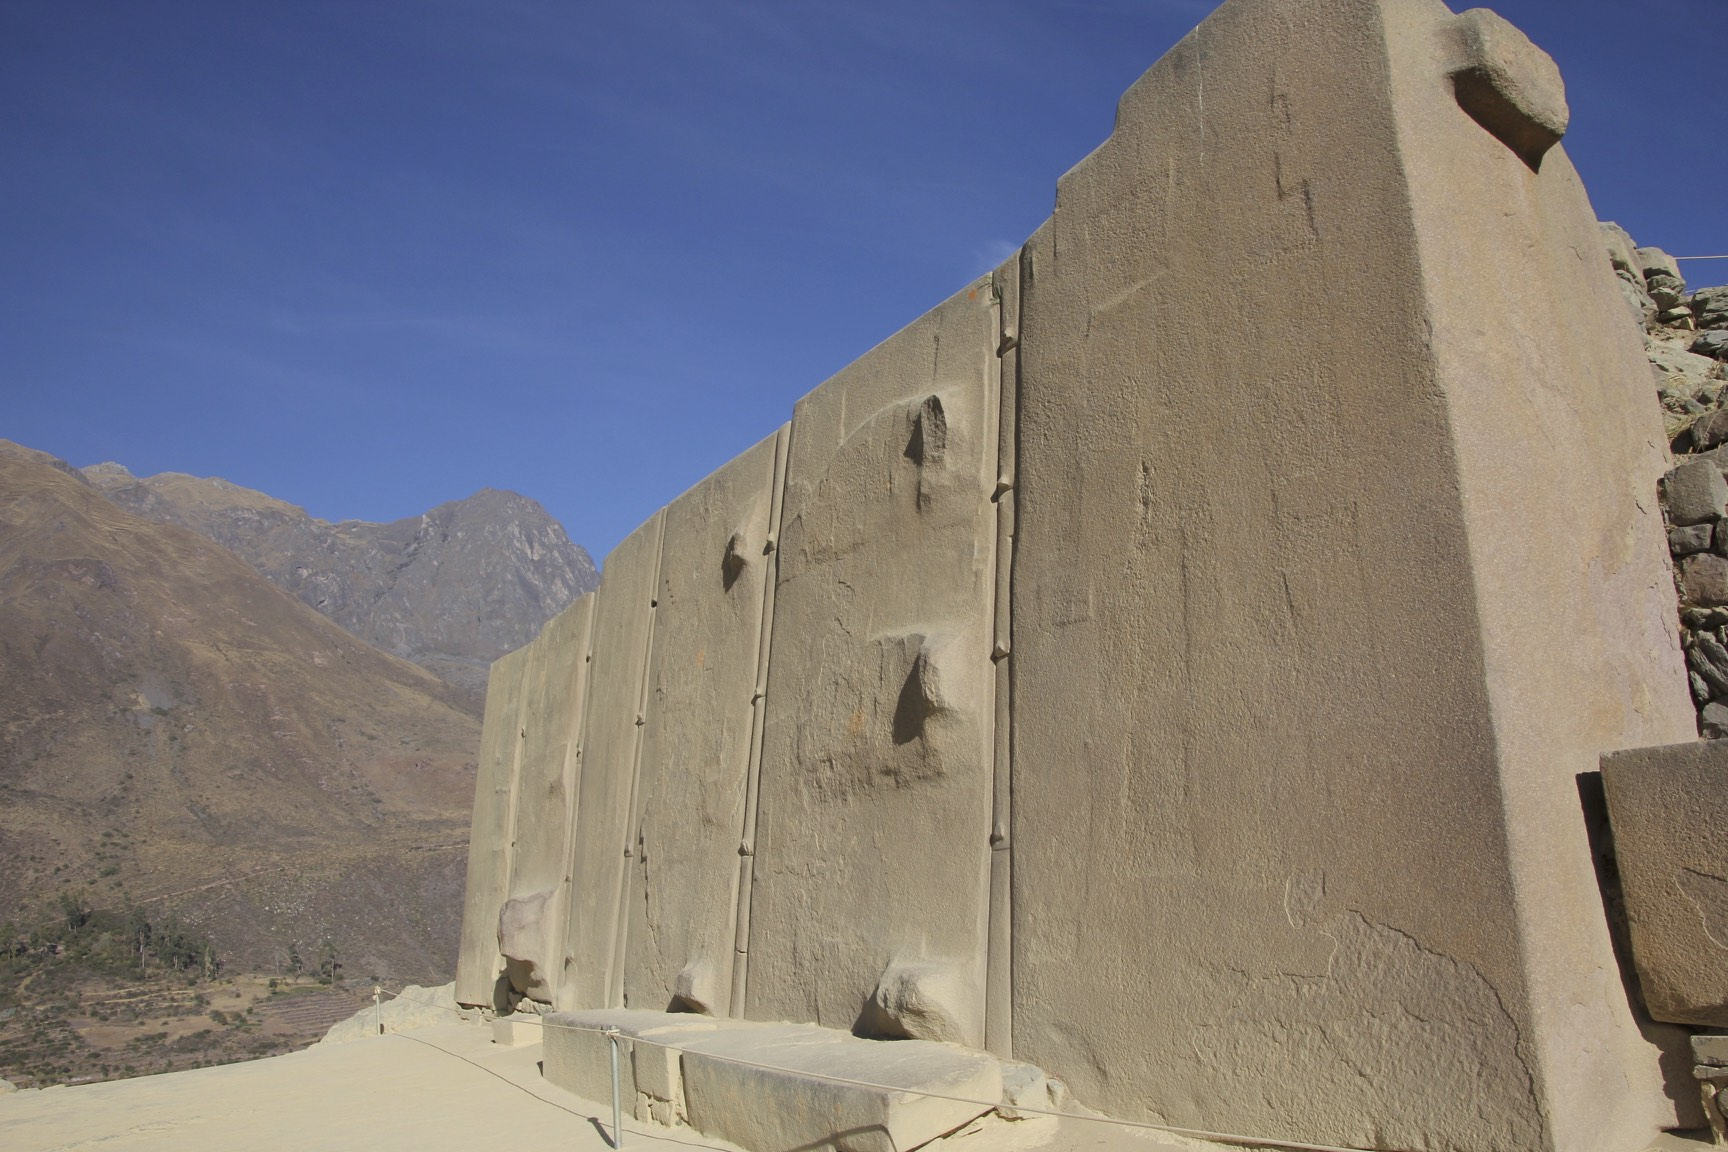 The Ollantaytambo Fortress. the Wall of the Six Monoliths, a towering section of wall.